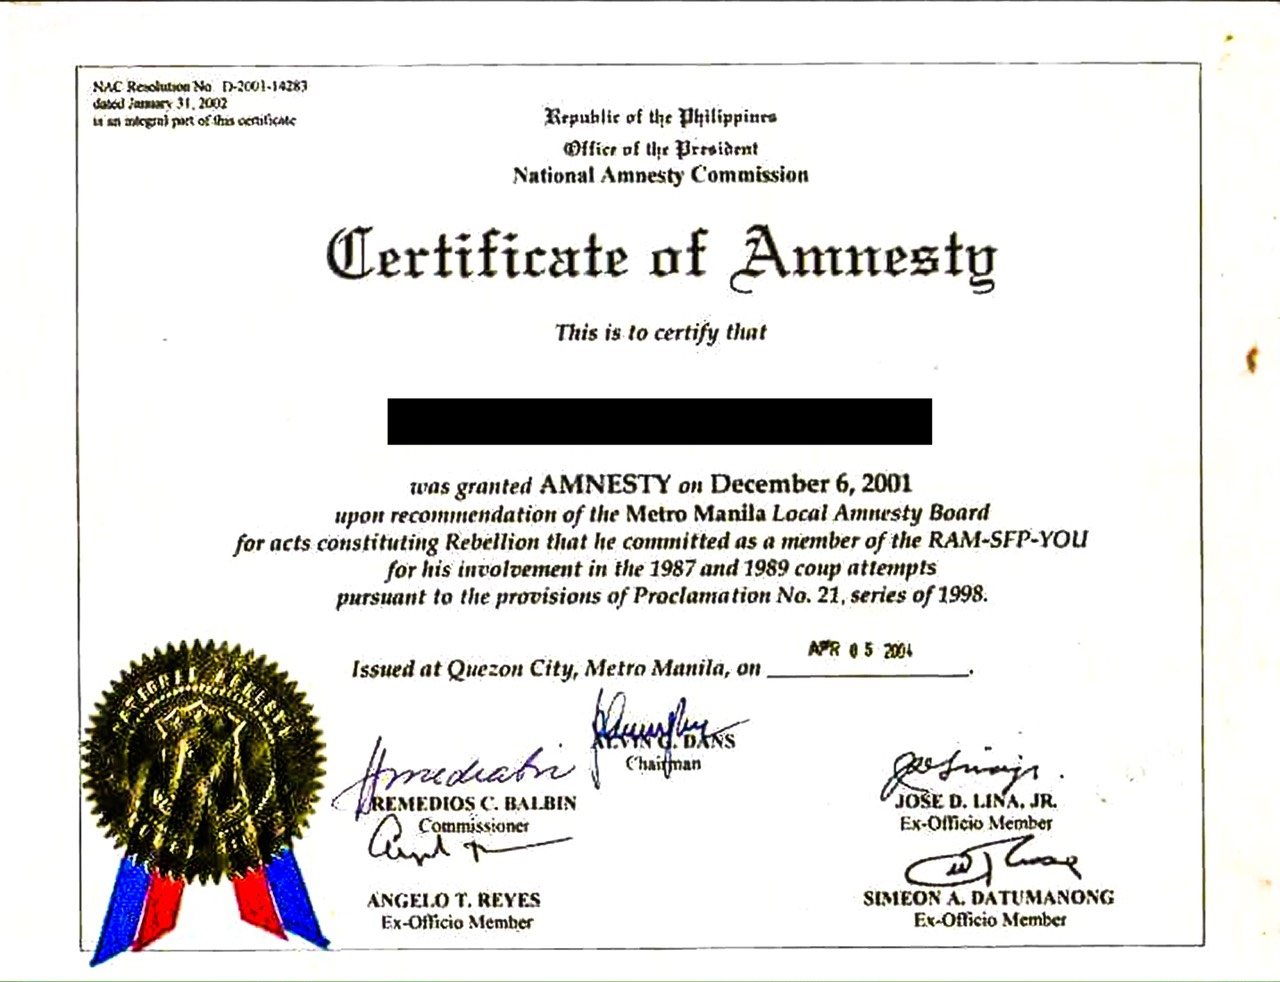 CERTIFICATE. Senator Trillanes presents a copy of a soldier's certificate of amnesty to show other presidents do not sign such documents. Photo from Trillanes' office